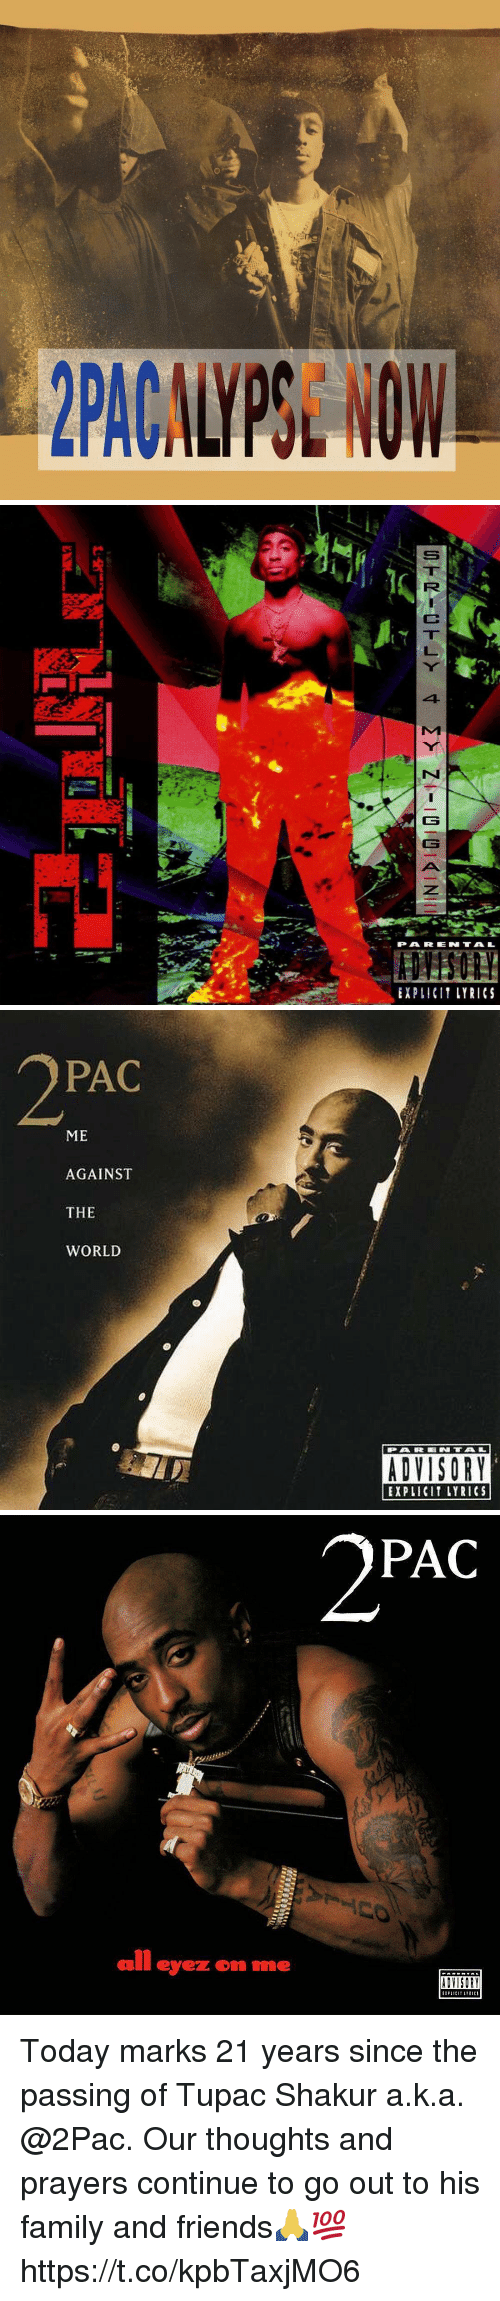 Tupac Shakur: 41  PARE N TAL  EXPLICI LYRICS   PAC  ME  AGAINST  THE  WORLD  EXPLICIT LYRICS   PAC  all eyez om me  ADVISORY Today marks 21 years since the passing of Tupac Shakur a.k.a. @2Pac. Our thoughts and prayers continue to go out to his family and friends🙏💯 https://t.co/kpbTaxjMO6